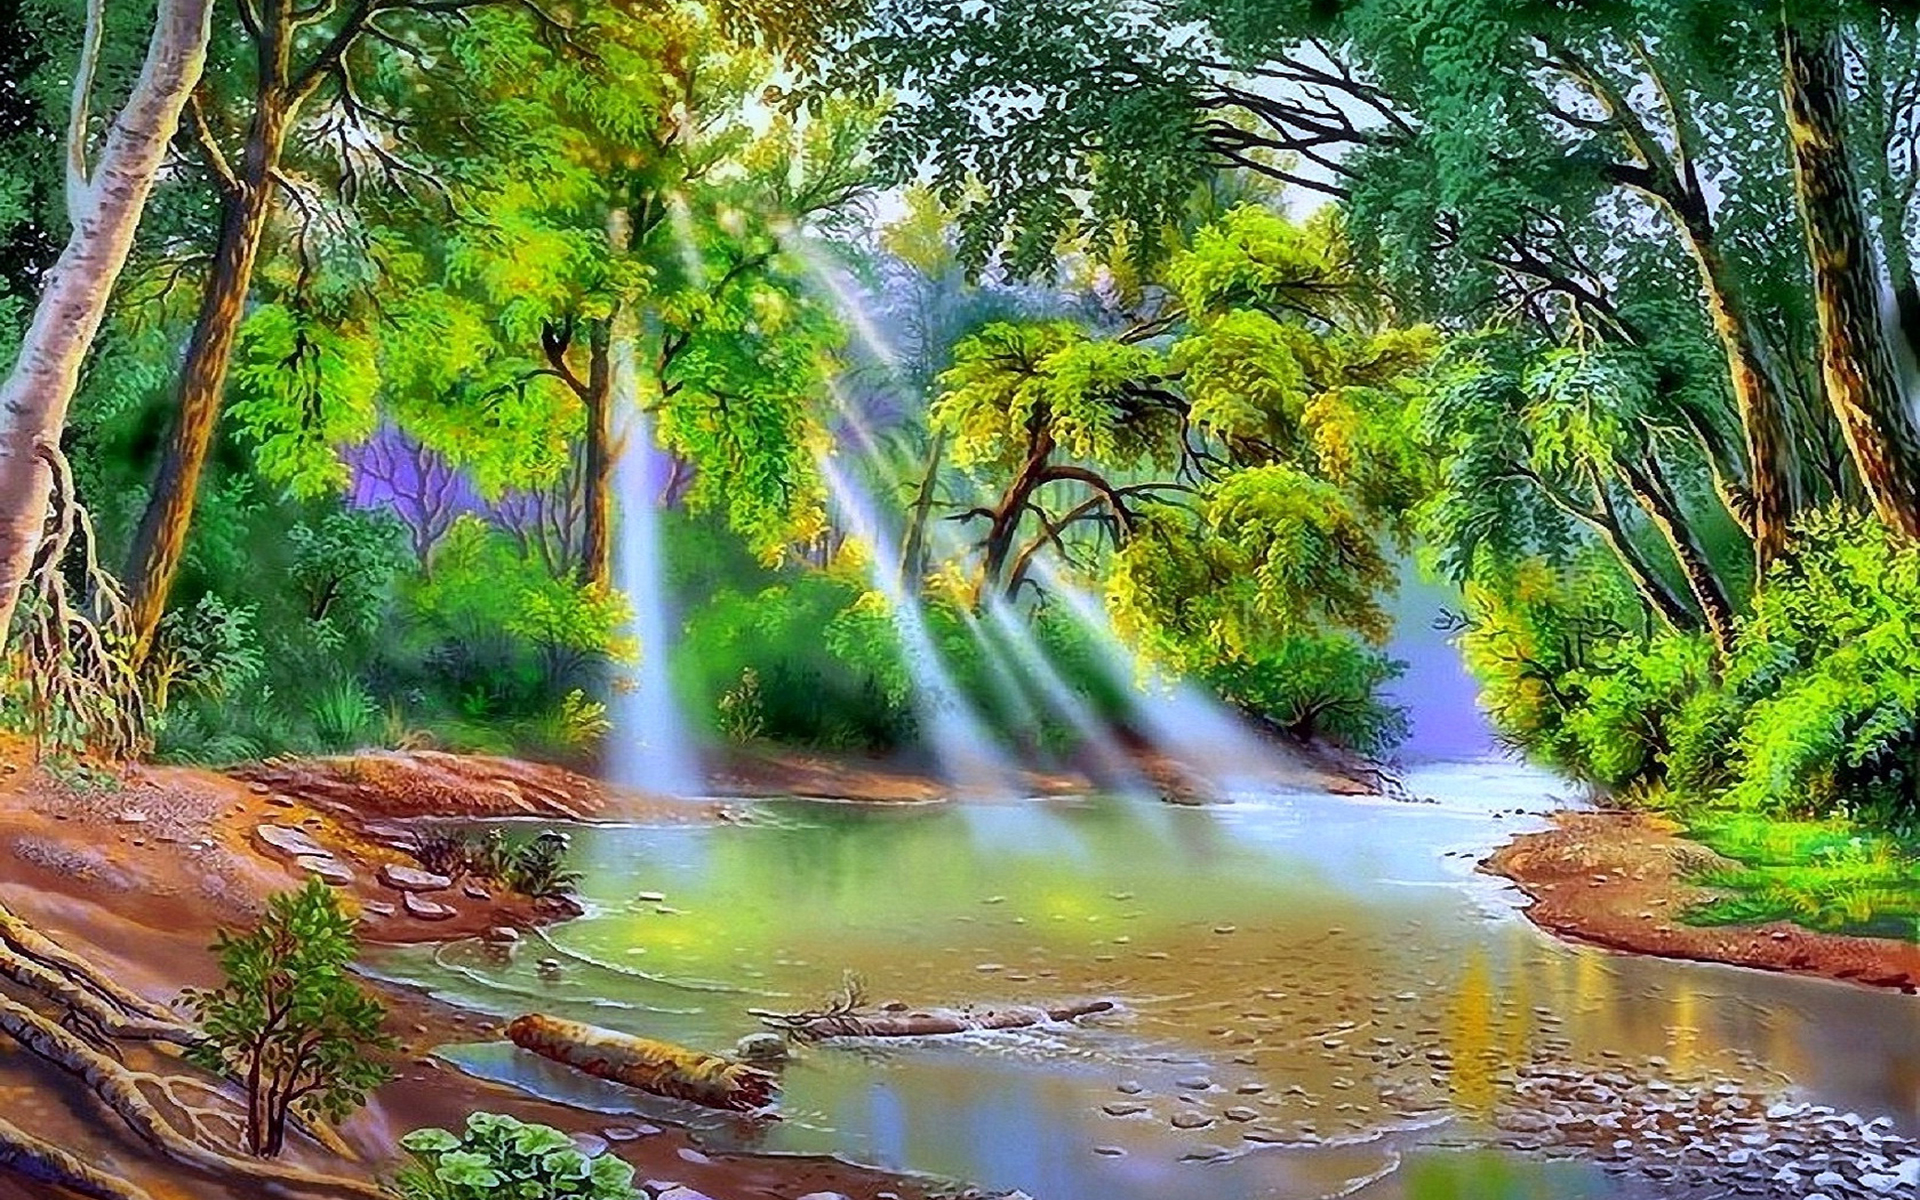 Natural Falls Wallpaper Free Download Nature River Trees With Green Leaves Sun Rays Art Hd